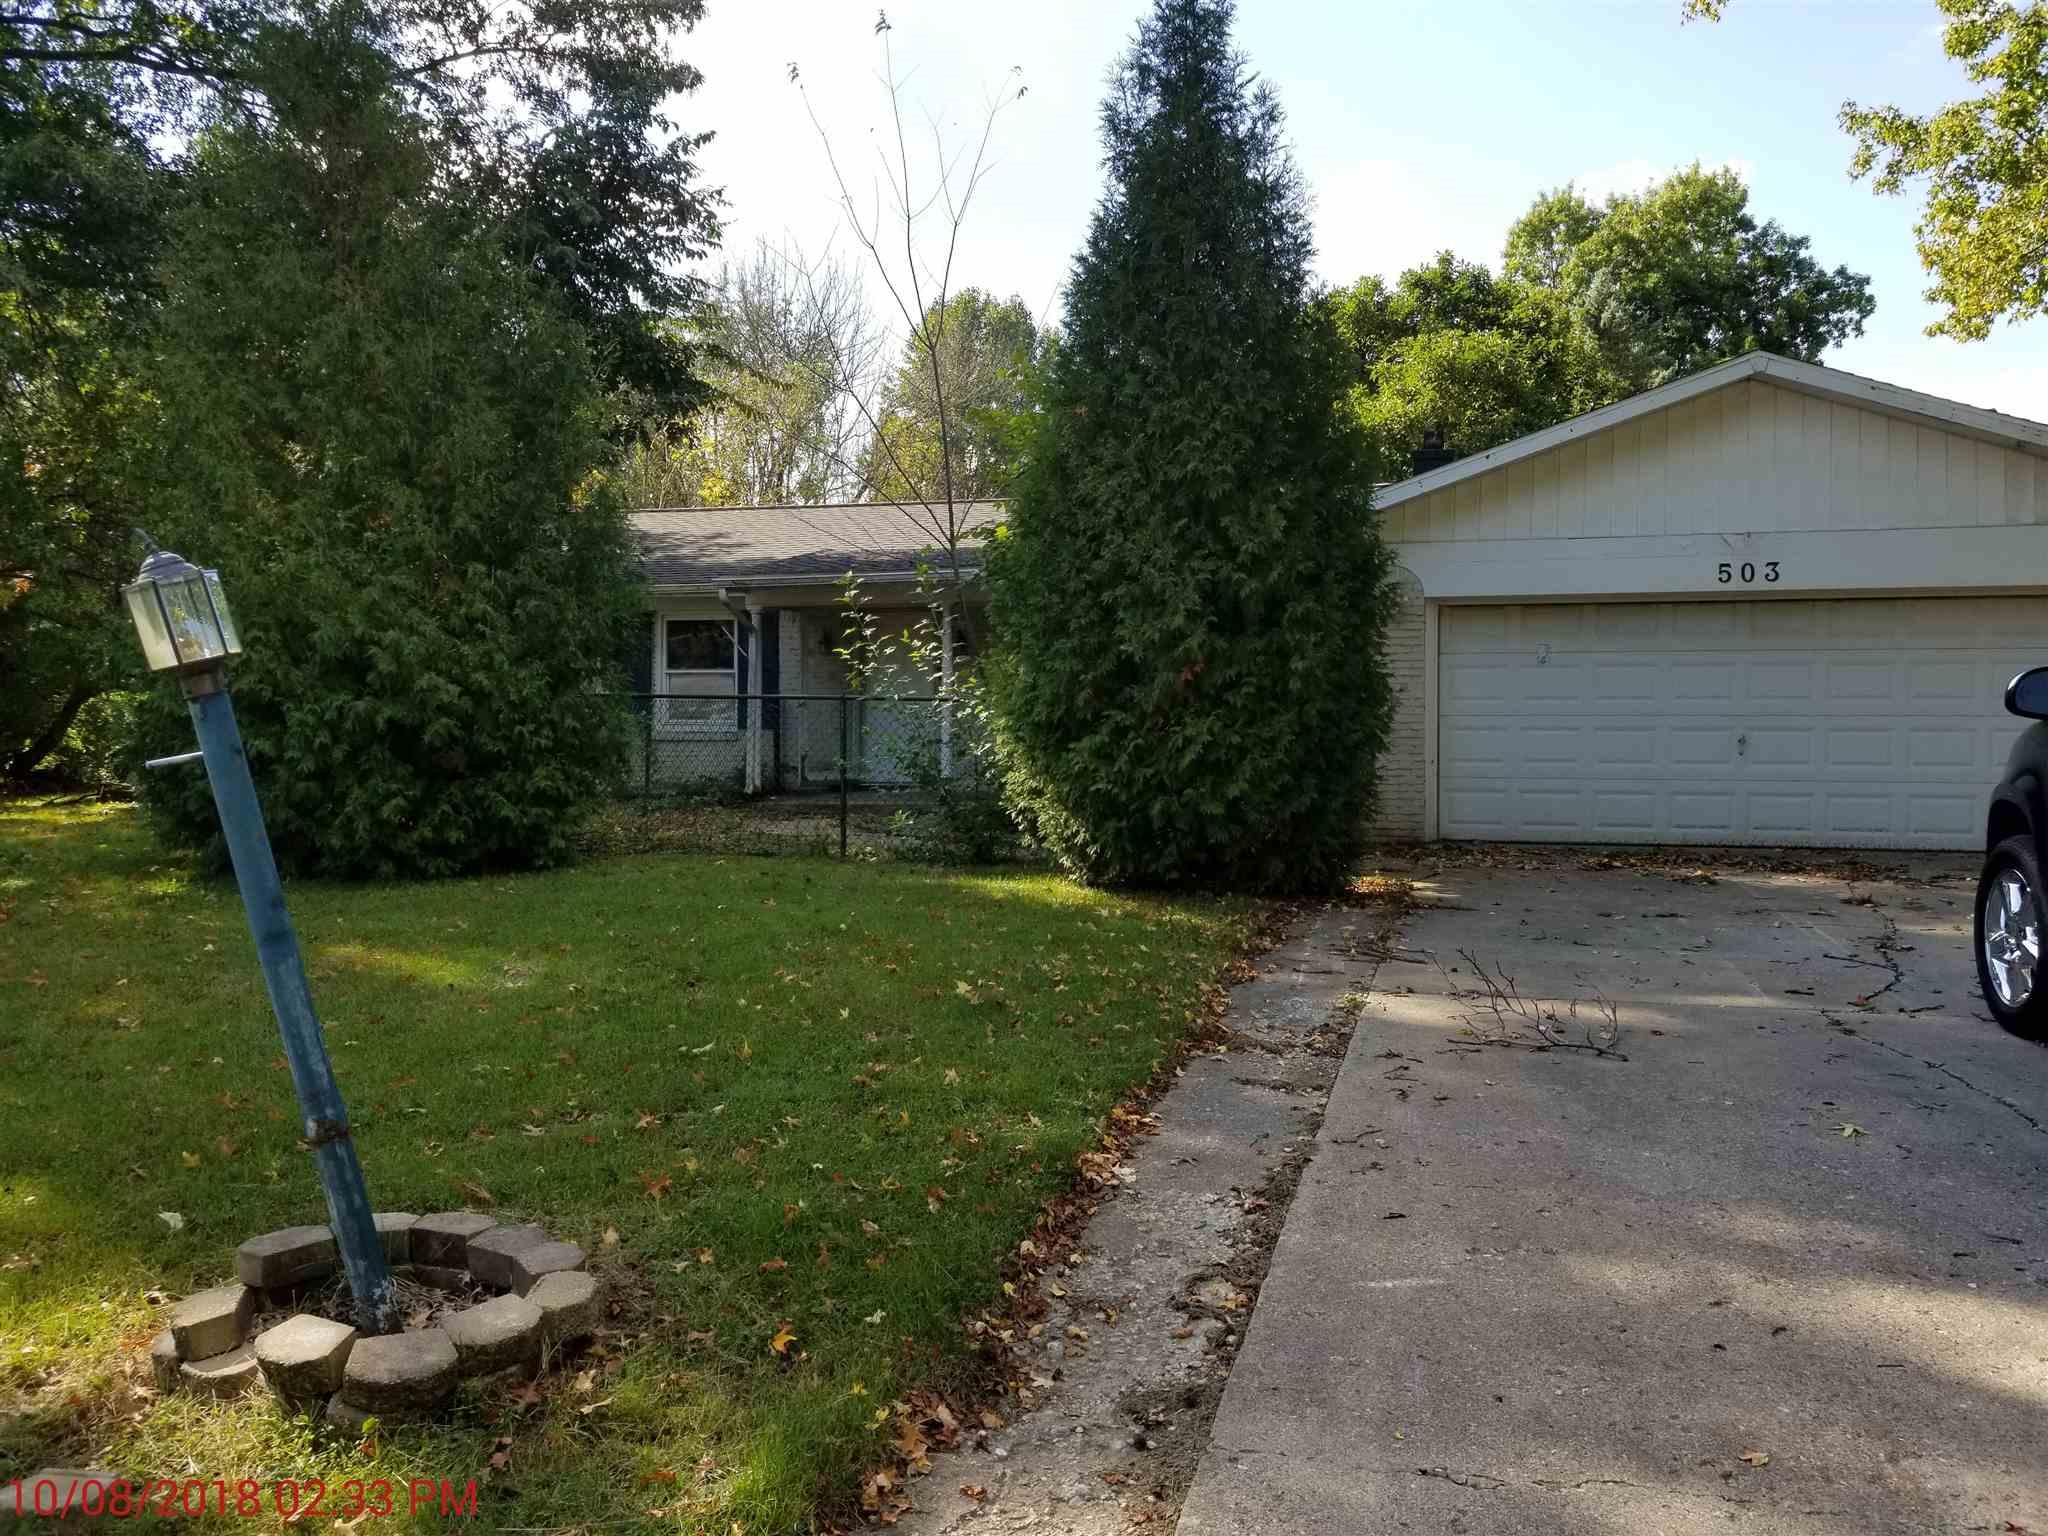 503 N 480 west, Kokomo, IN 46901